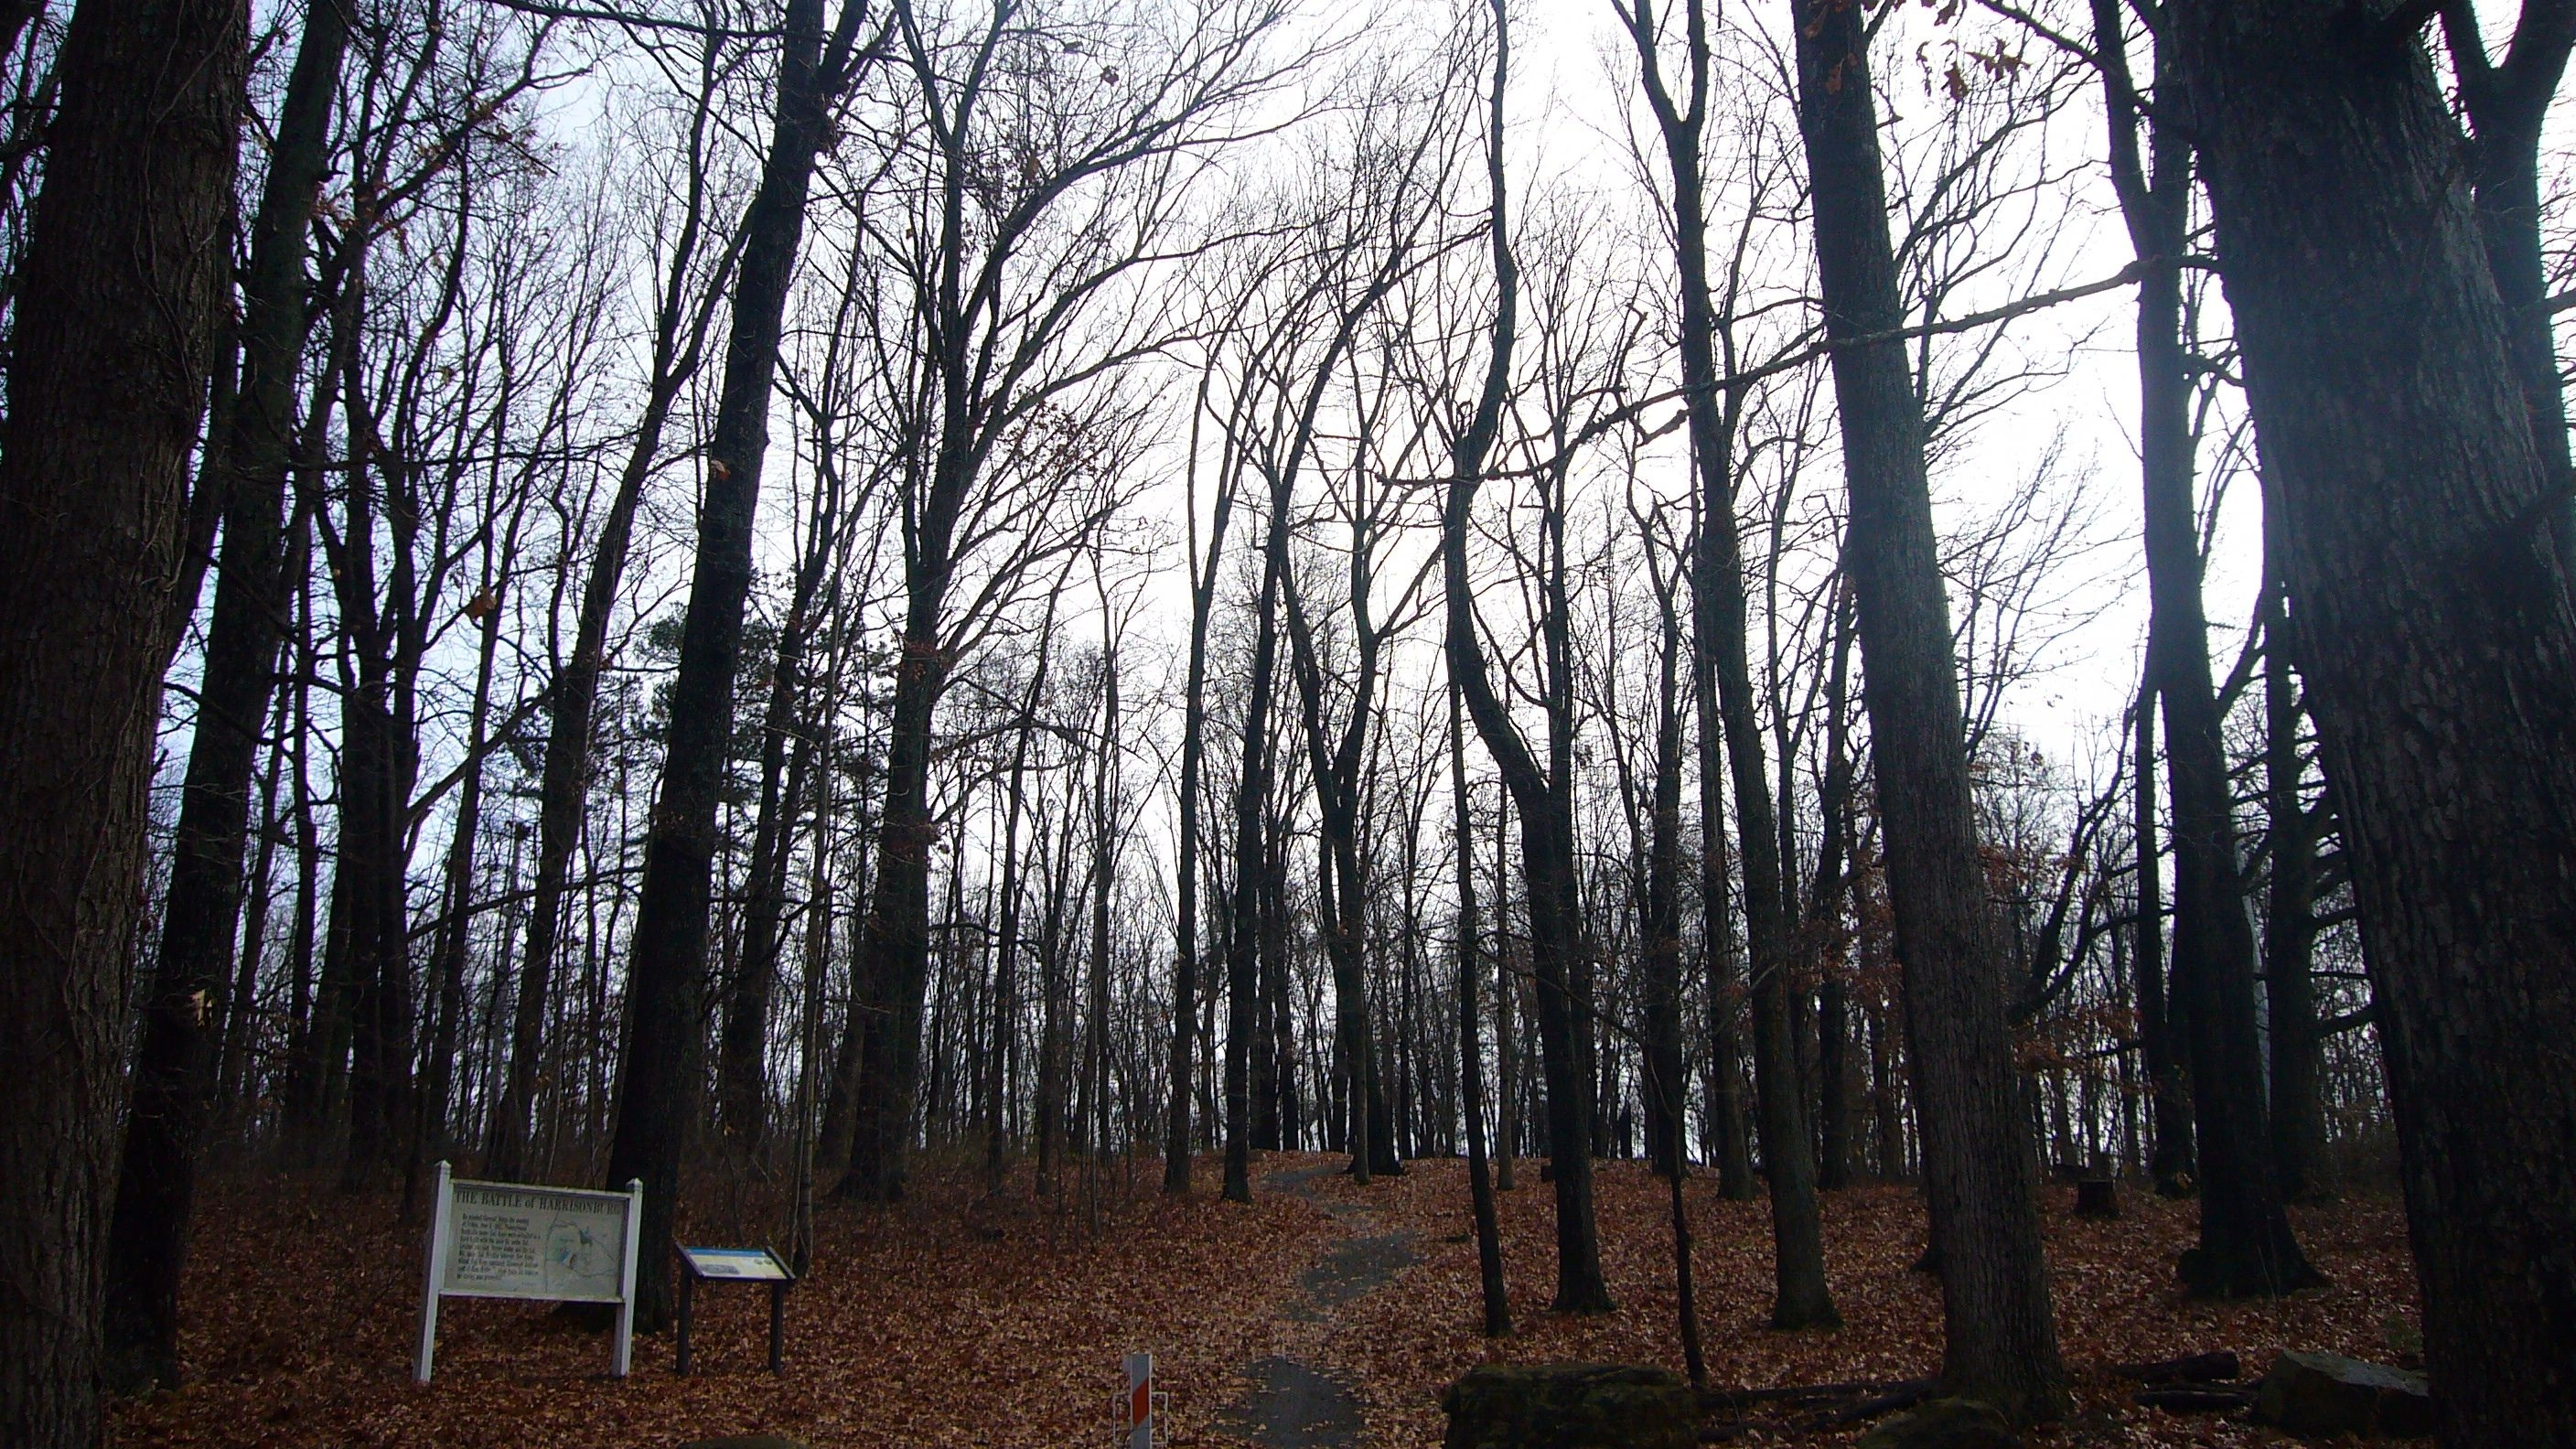 Chestnut Ridge and Battle of Harrisonburg markers